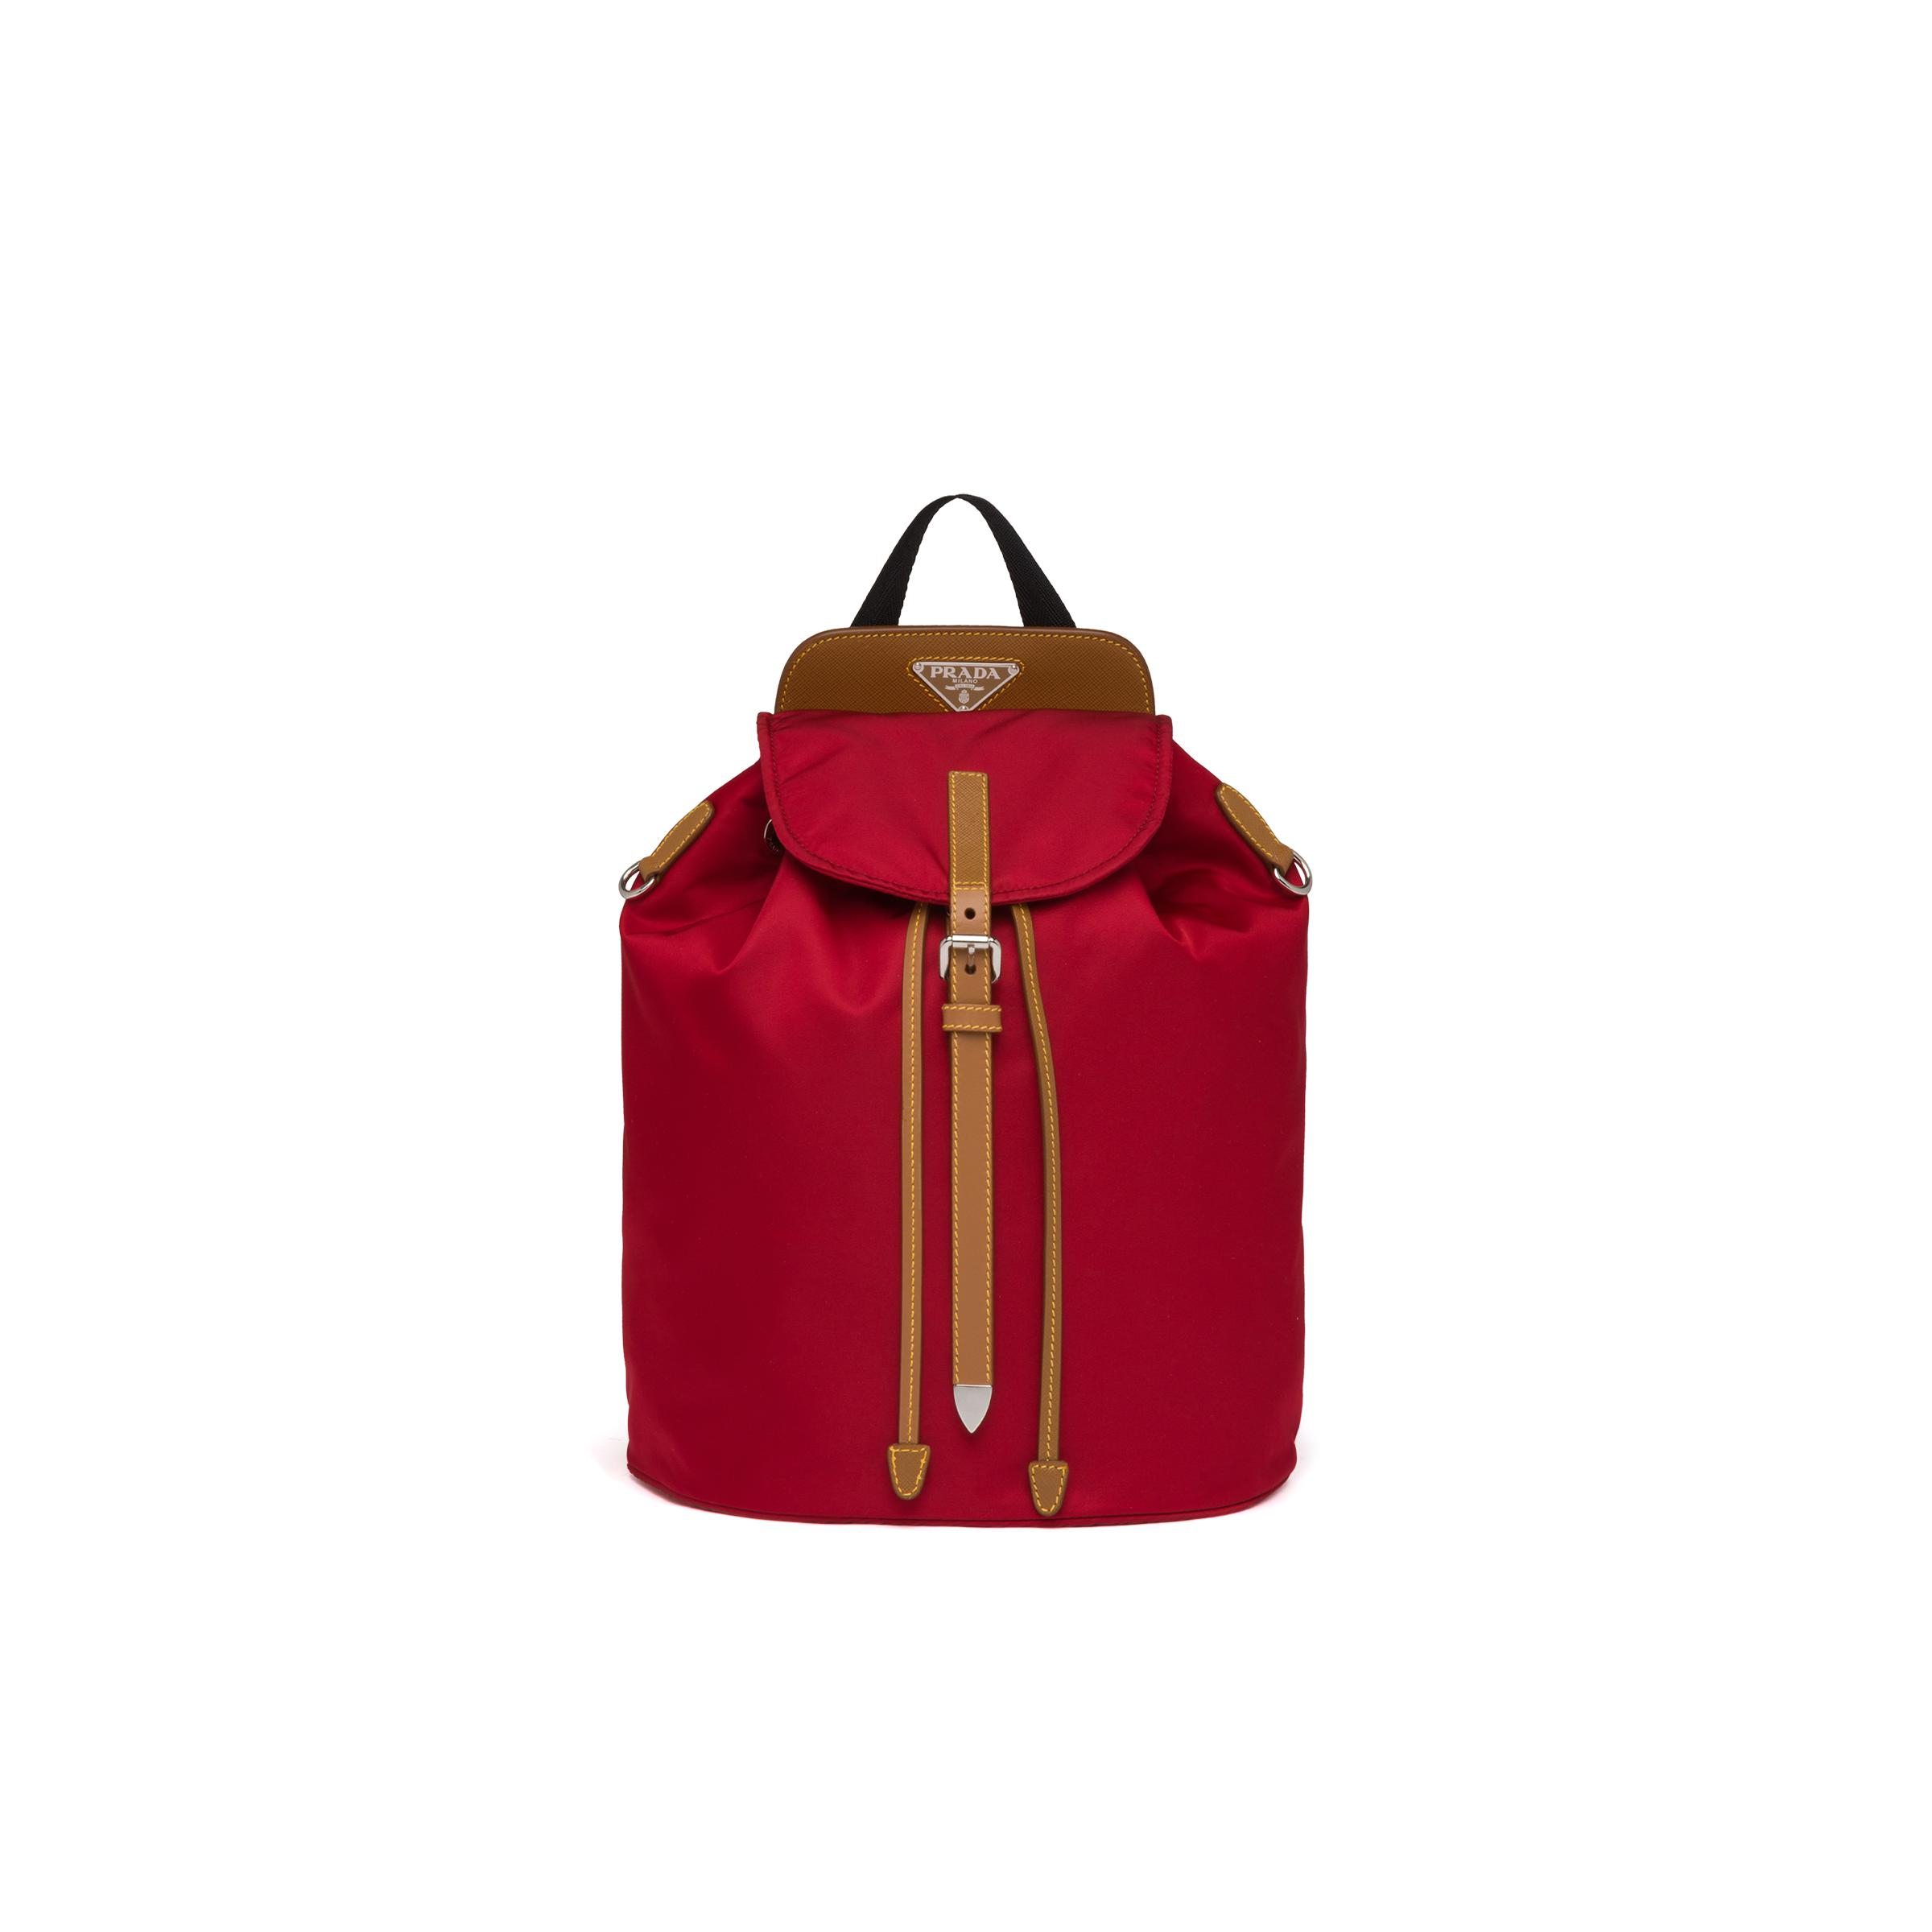 Nylon And Saffiano Leather Backpack Women Fire Engine Red/caramel